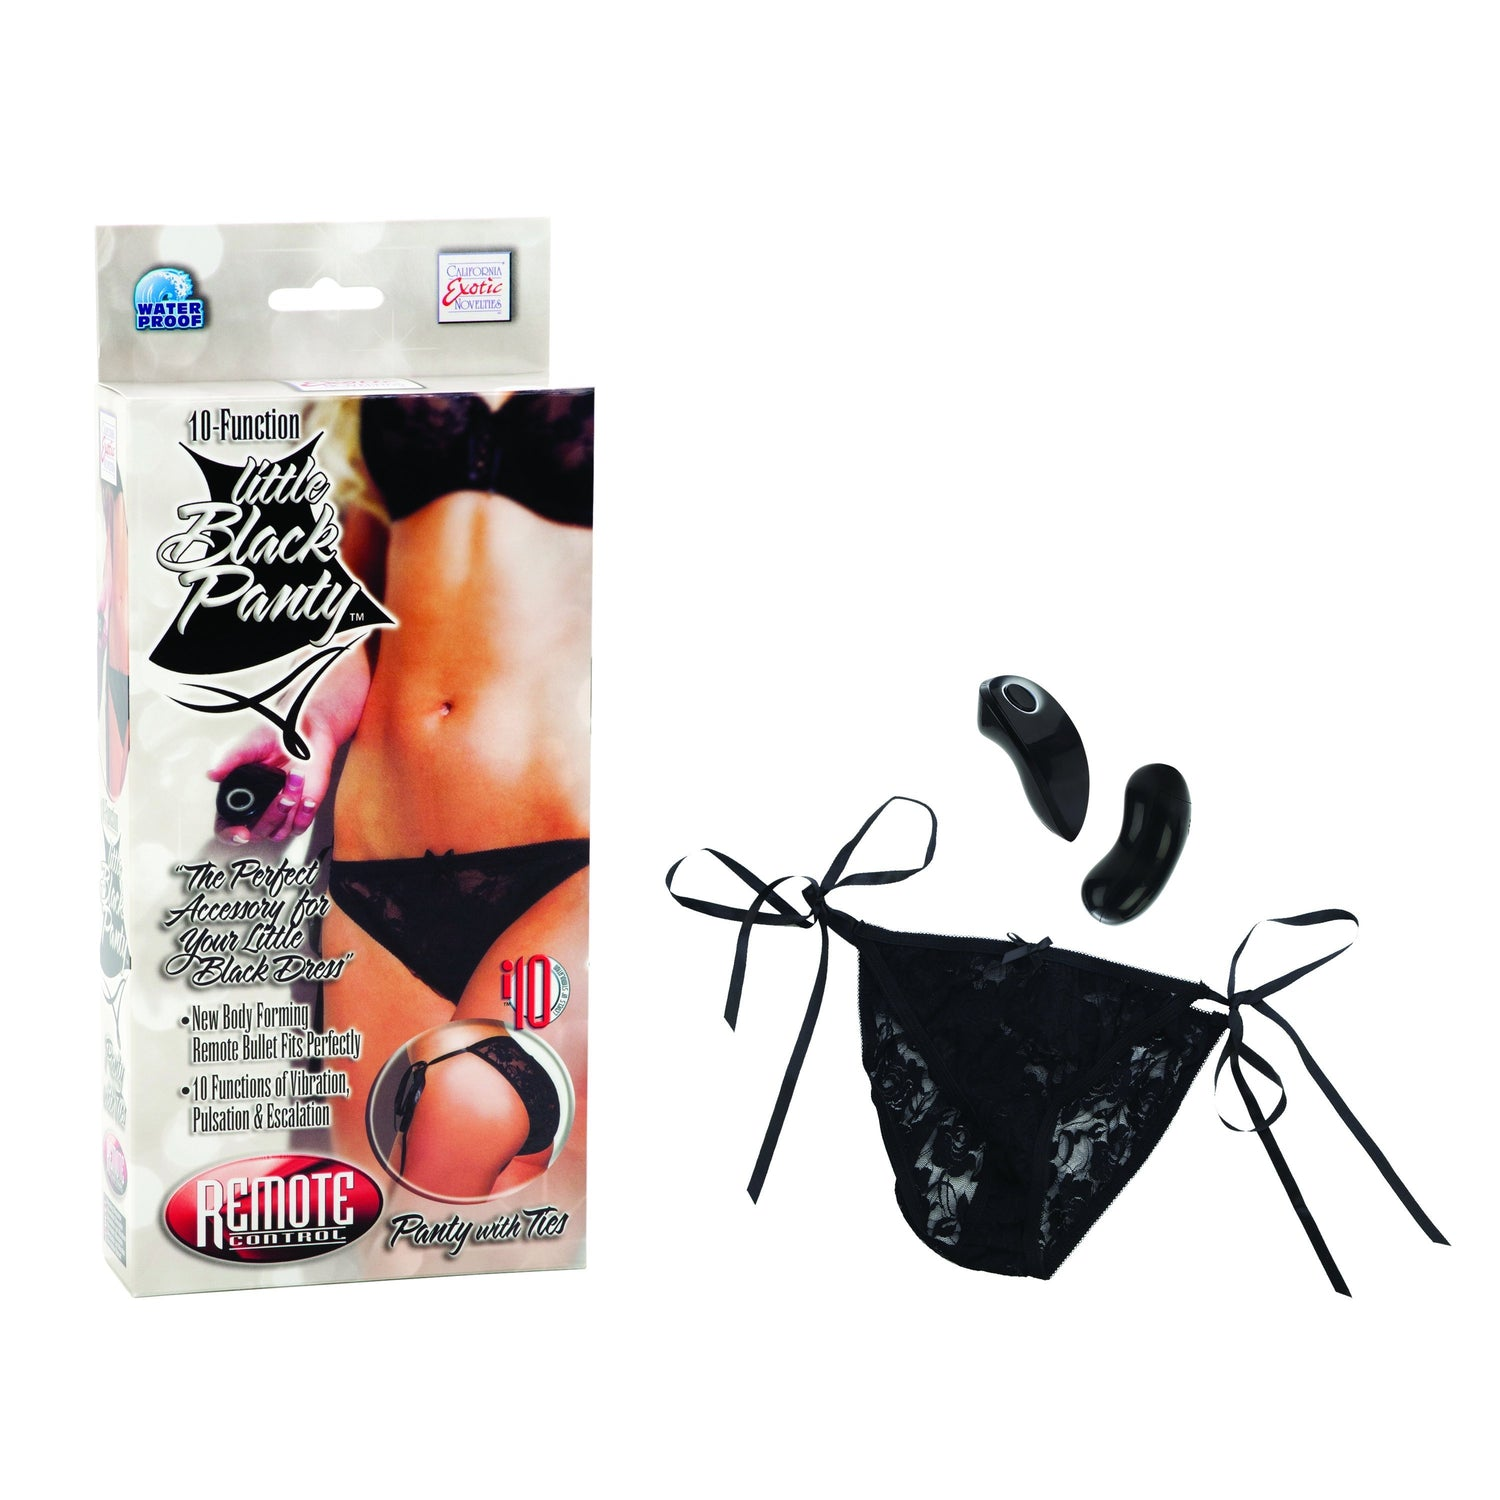 California Exotics - Little Black Panty Remote Control 10 Function Vibrating Panty (Black) | CherryAffairs Singapore